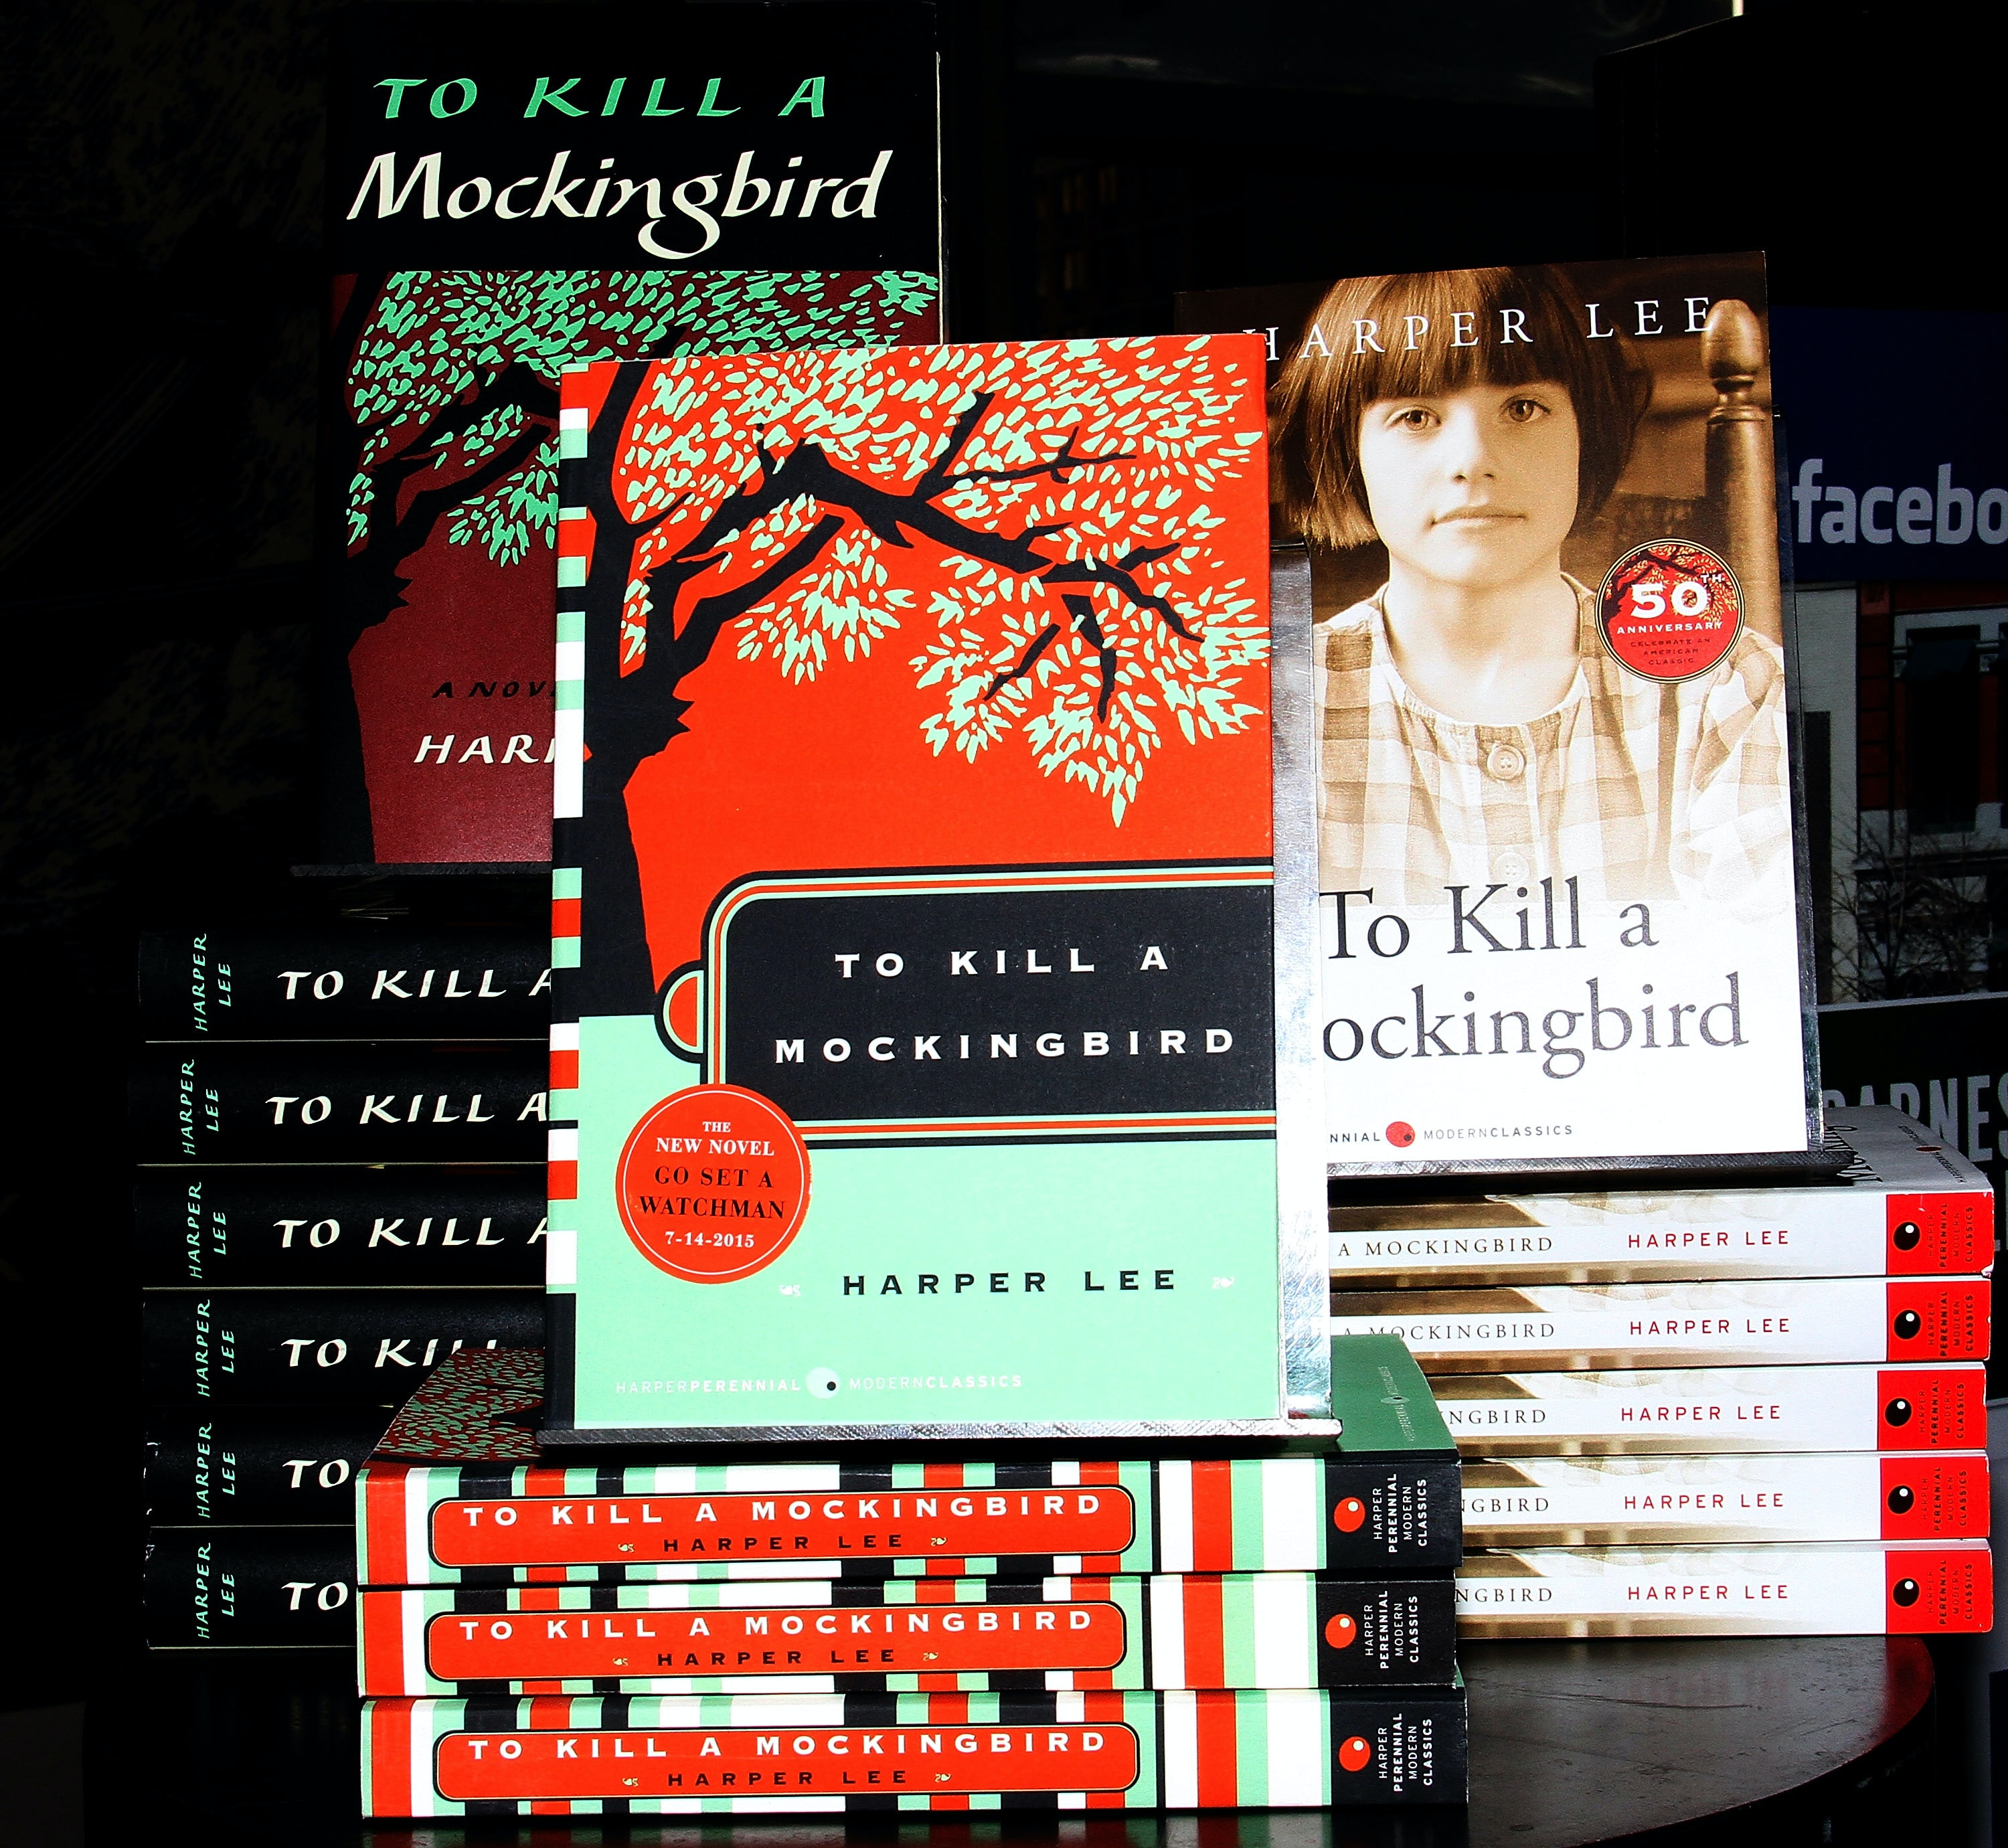 School District Pulls To Kill a Mockingbird From Curriculum